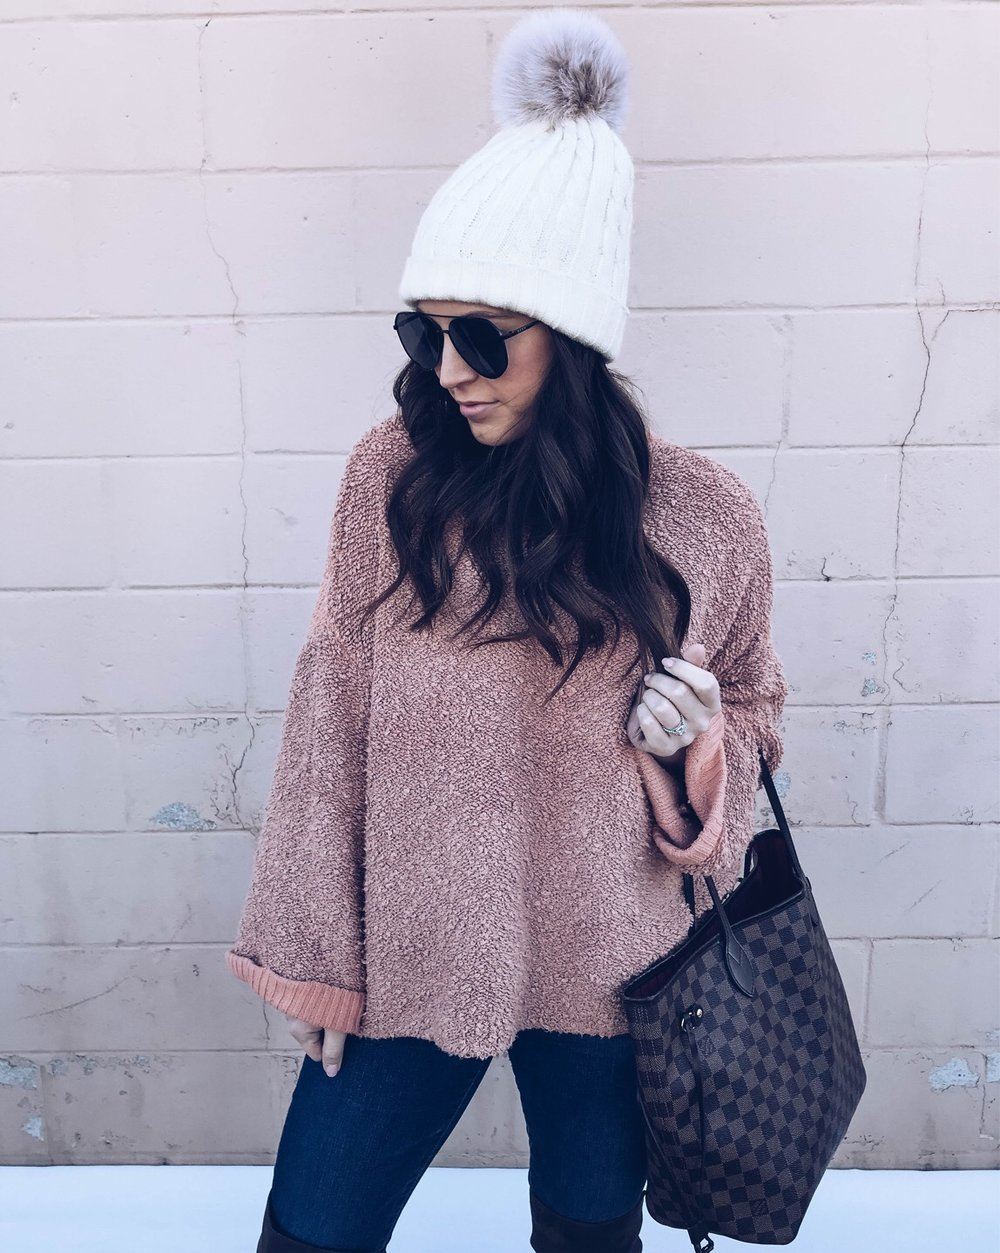 Instagram Round Up | Pine Barren Beauty | outfit of the day, winter outfit idea, winter fashion, oversized sweater & pom beanie, free people sweater